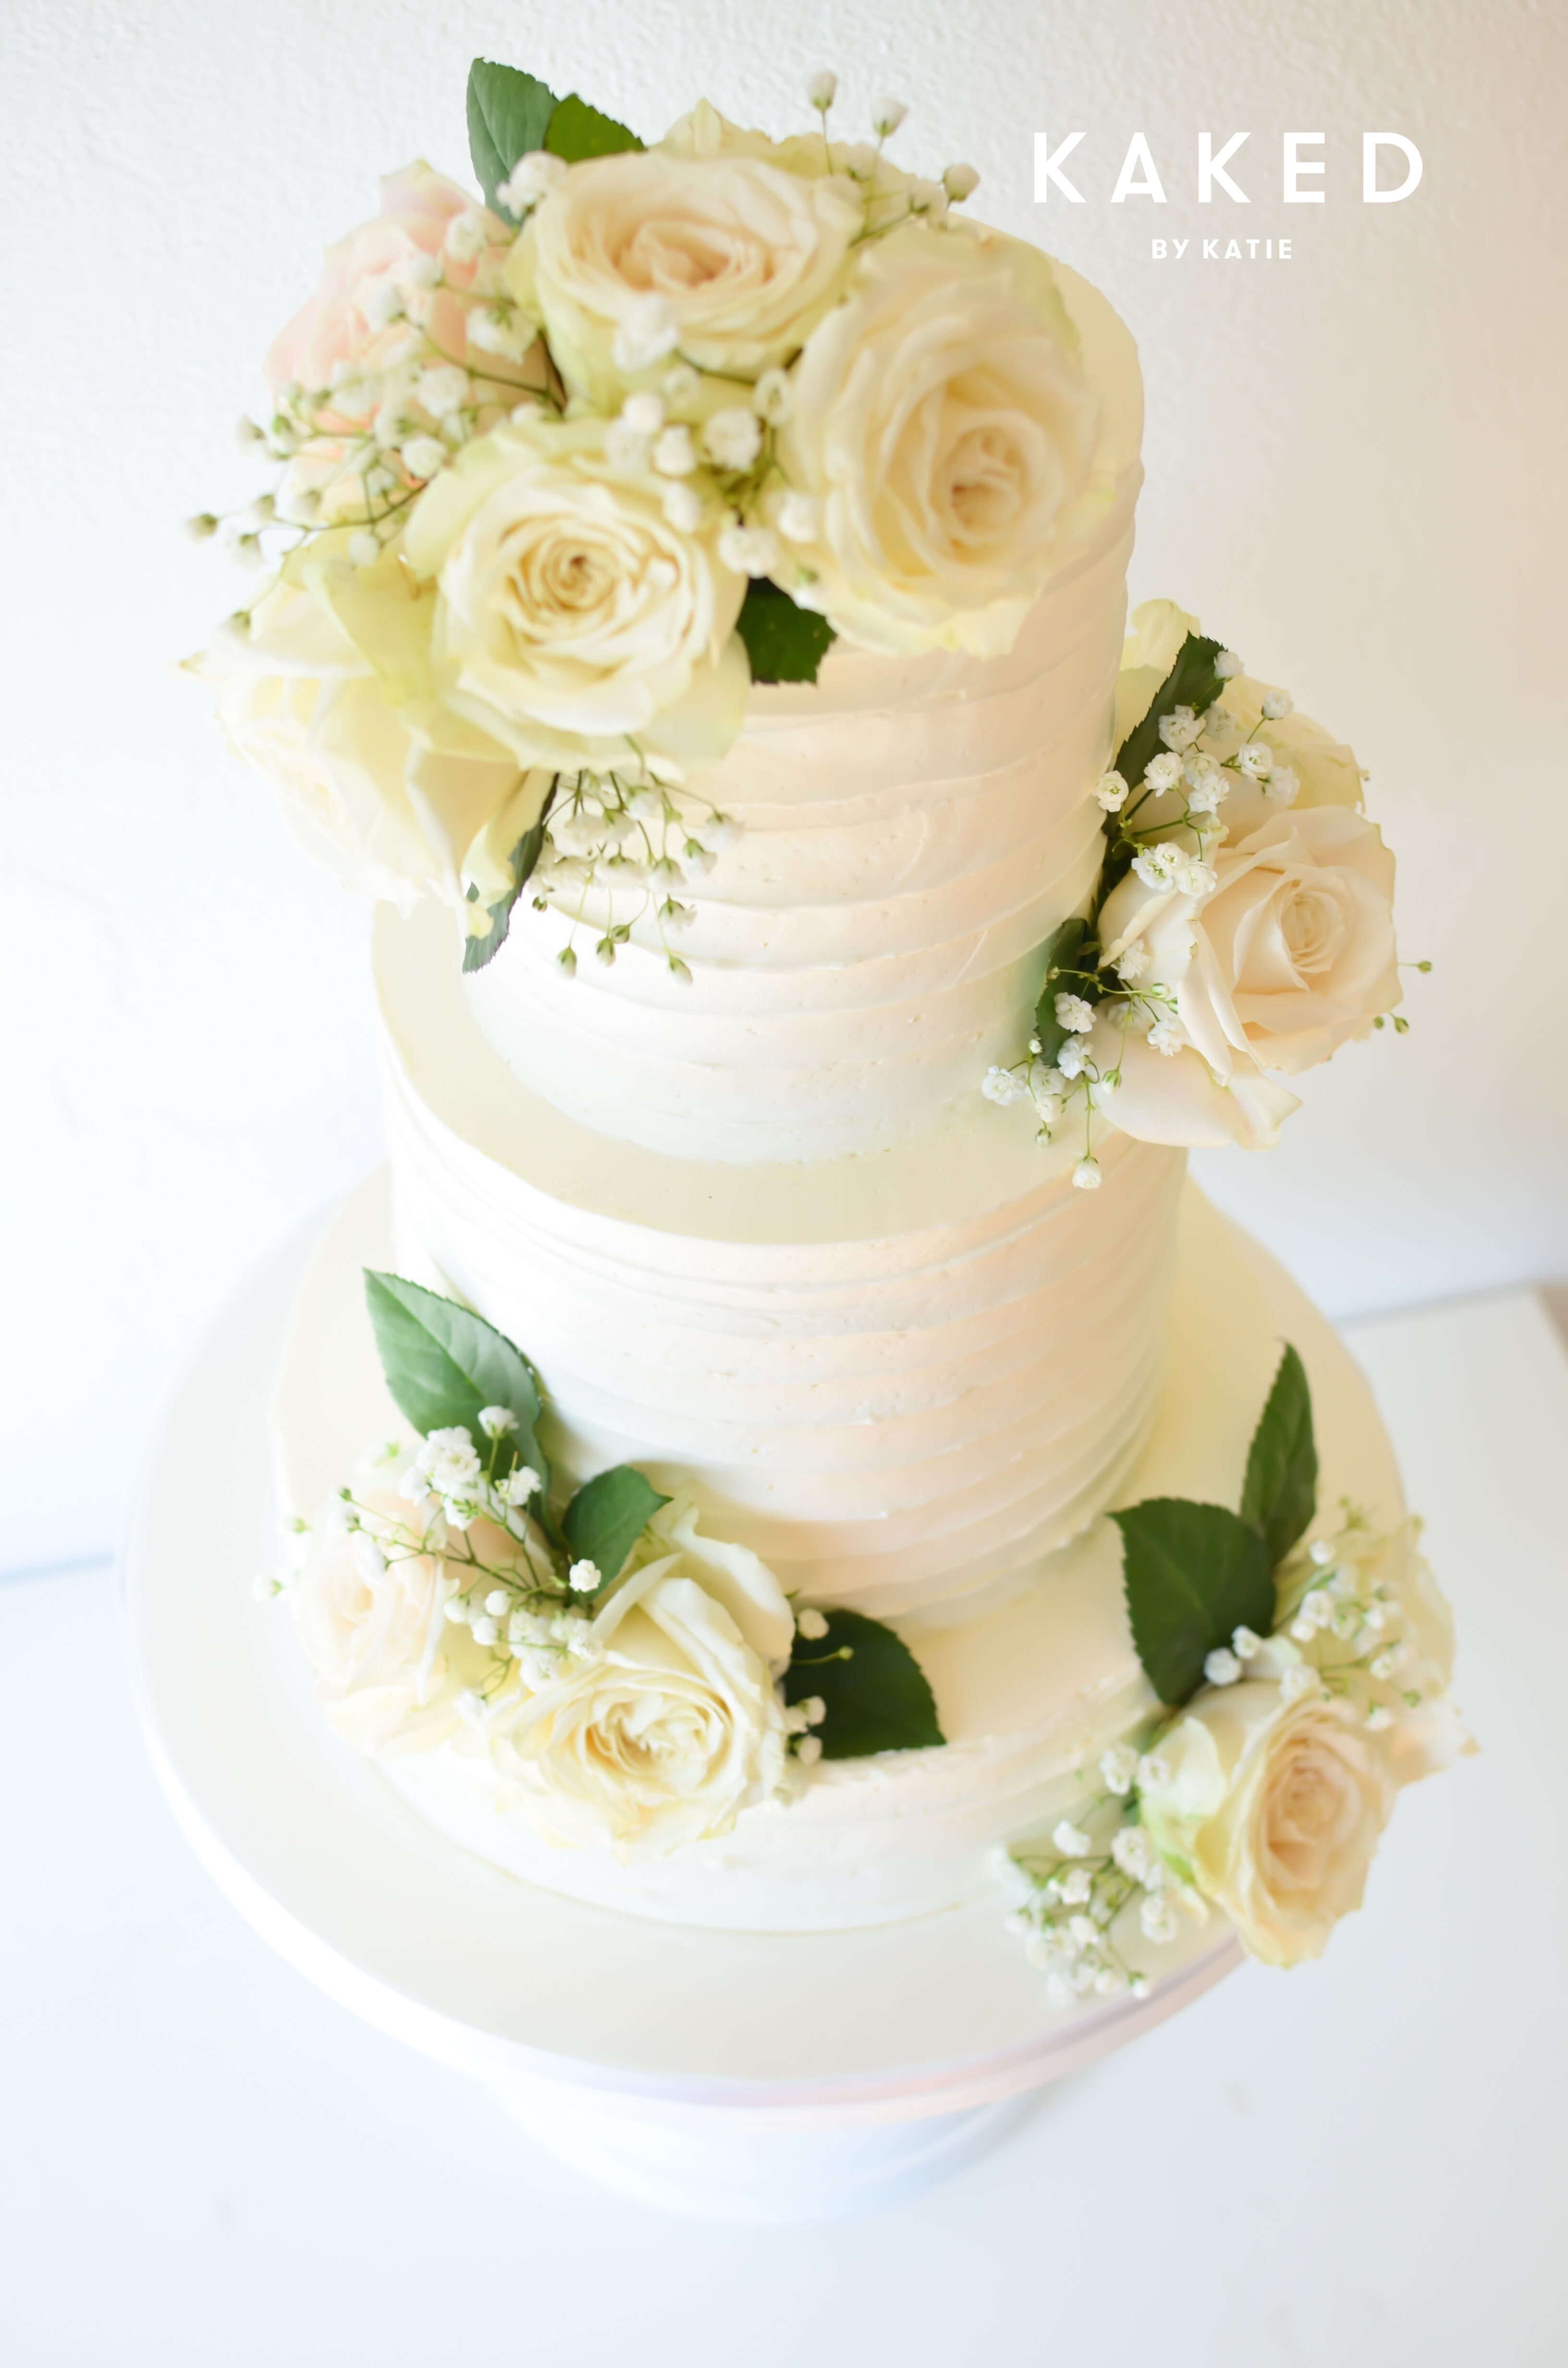 Wedding Cake Bakeries in St. Louis, MO - The Knot